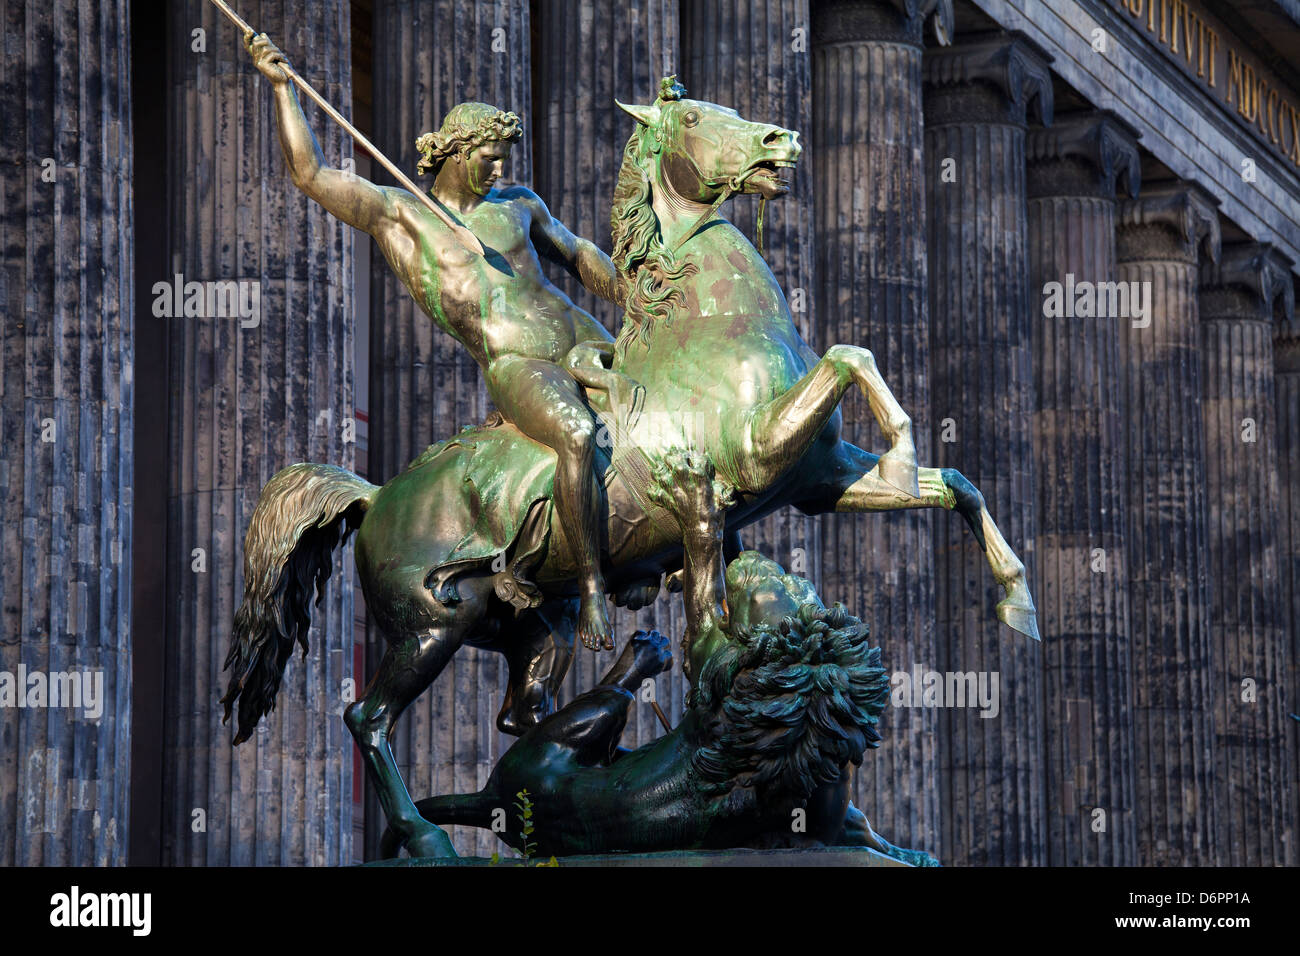 Statue of a rider on a horse in front of the Altes Museum, Berlin, Germany, Europe - Stock Image